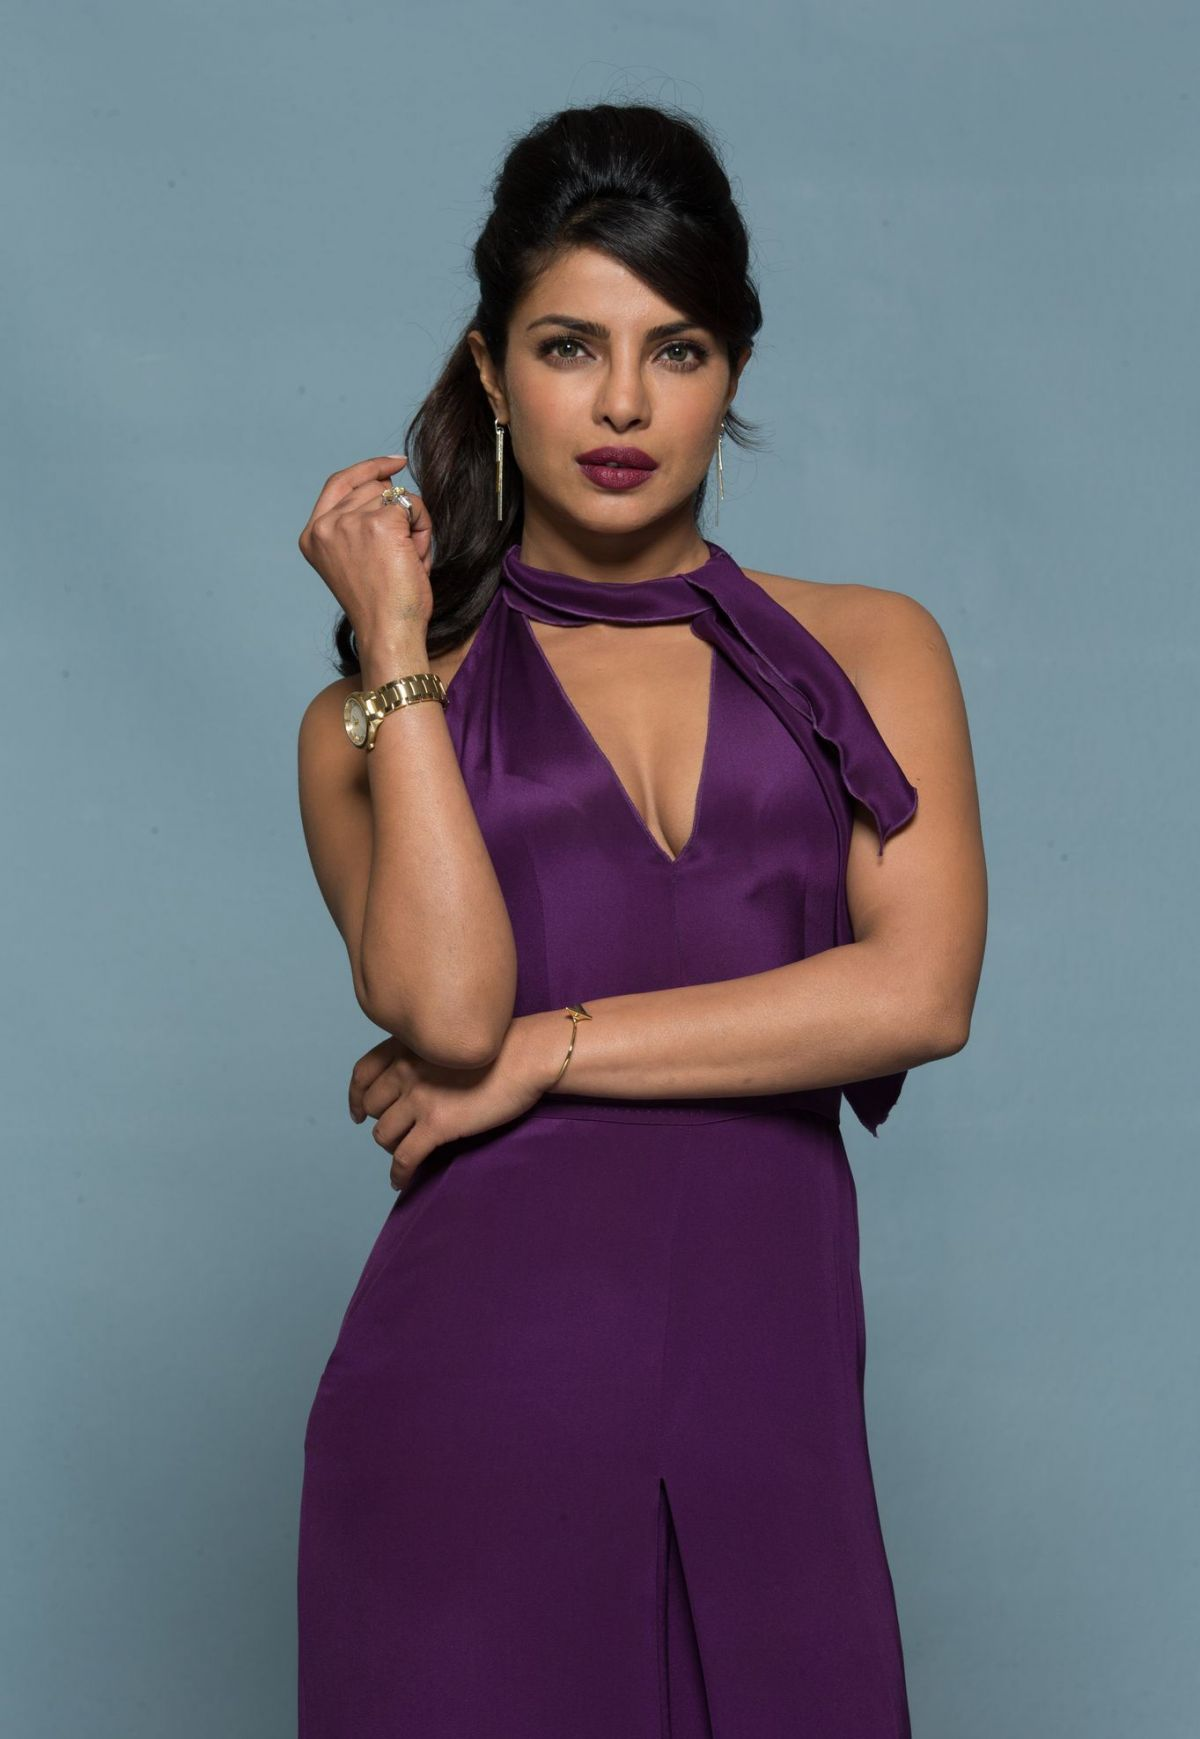 priyanka chopra - photo #24